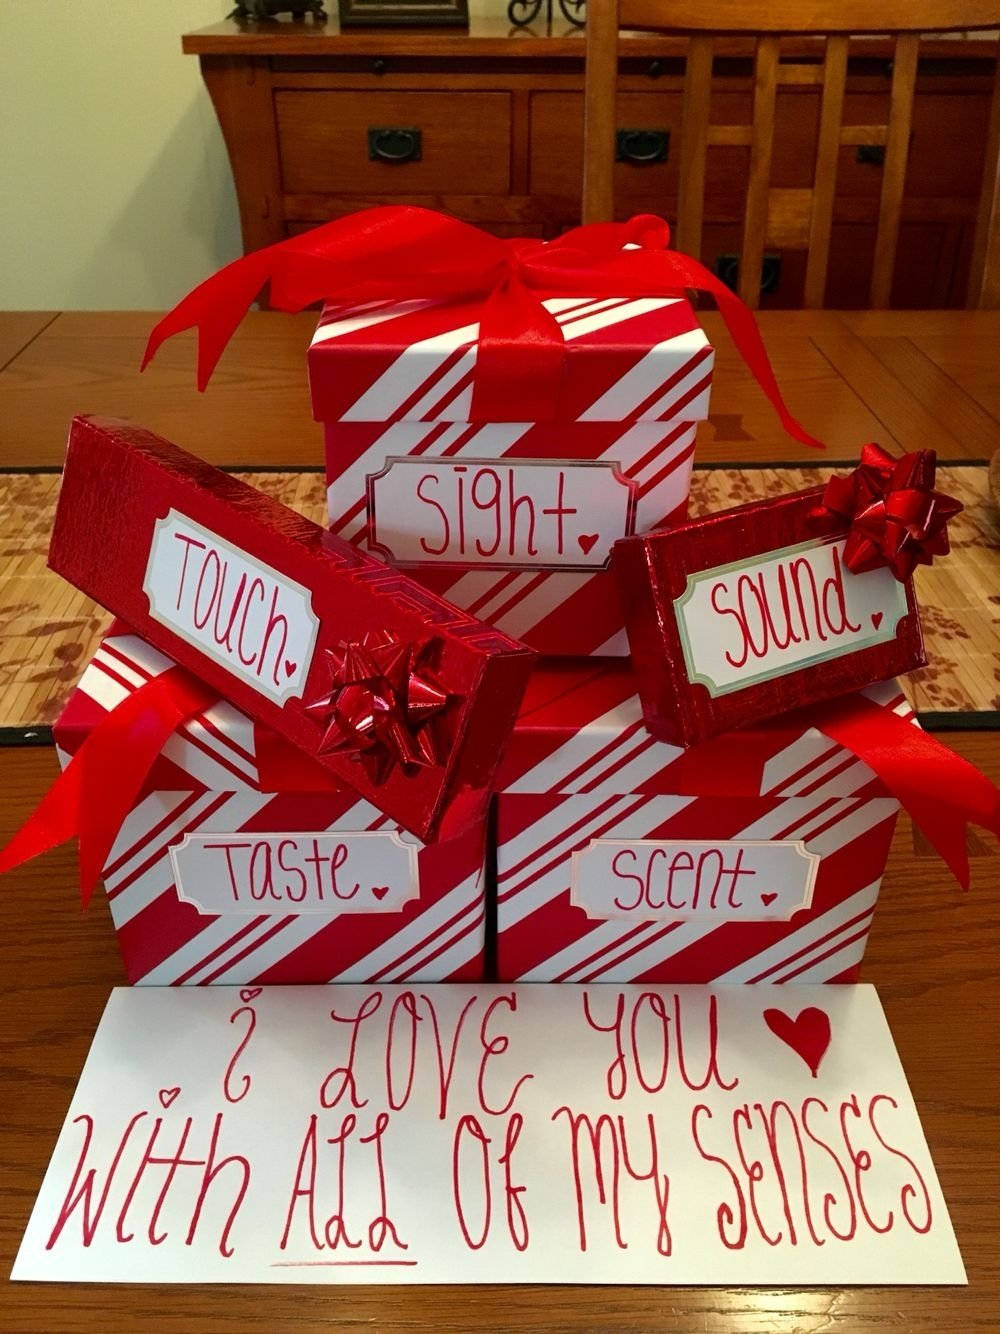 10 Stylish Valentine Gifts Ideas For Him gift idea for him used the 5 senses to incorporate 5 gifts for 1 2020